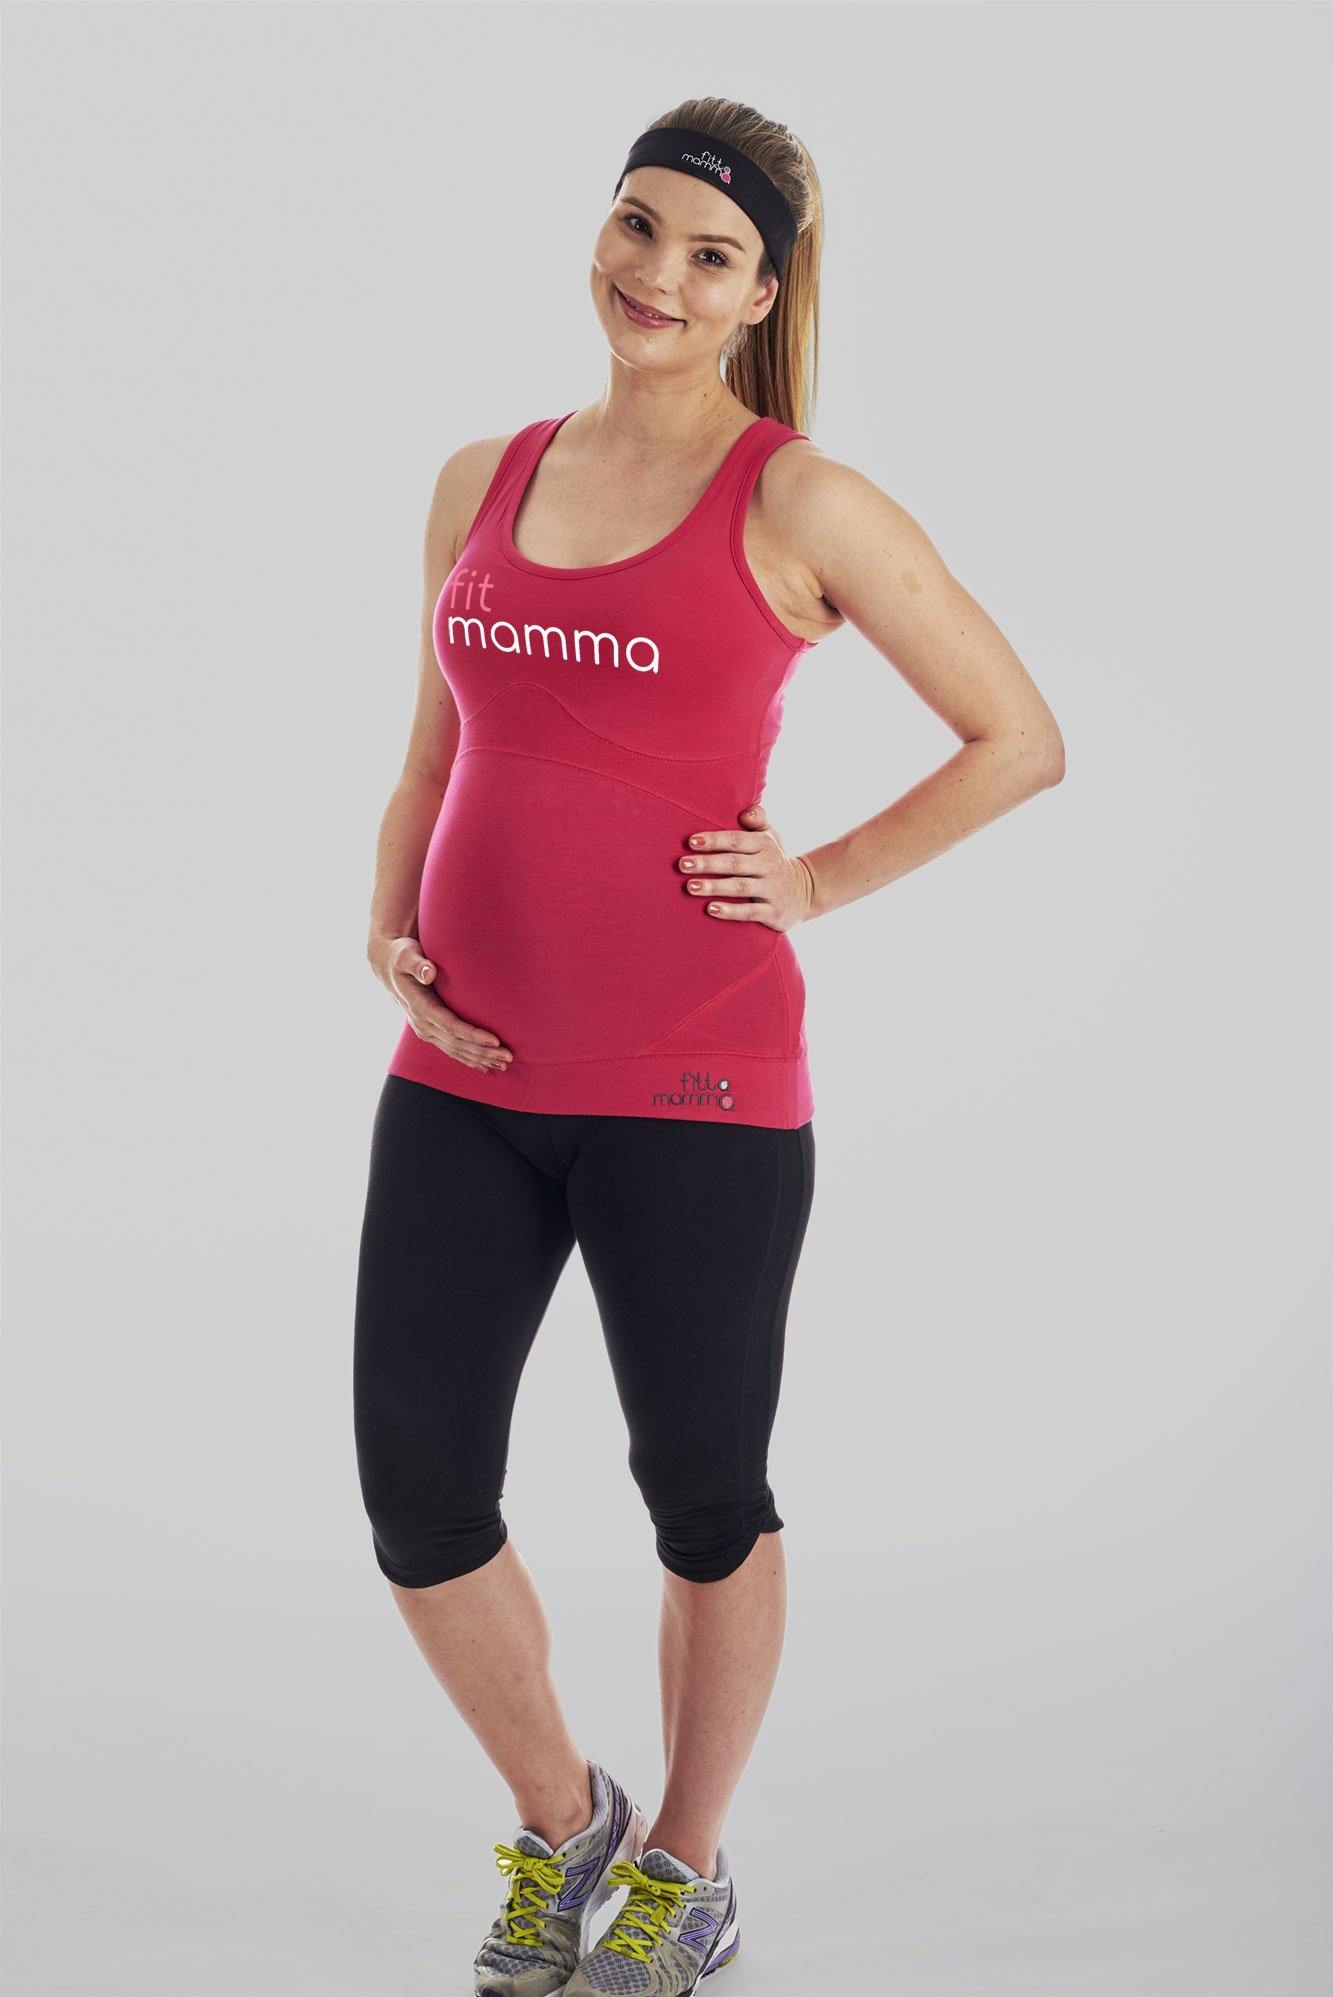 FitMamma Maternity Workout Support Top - FittaMamma